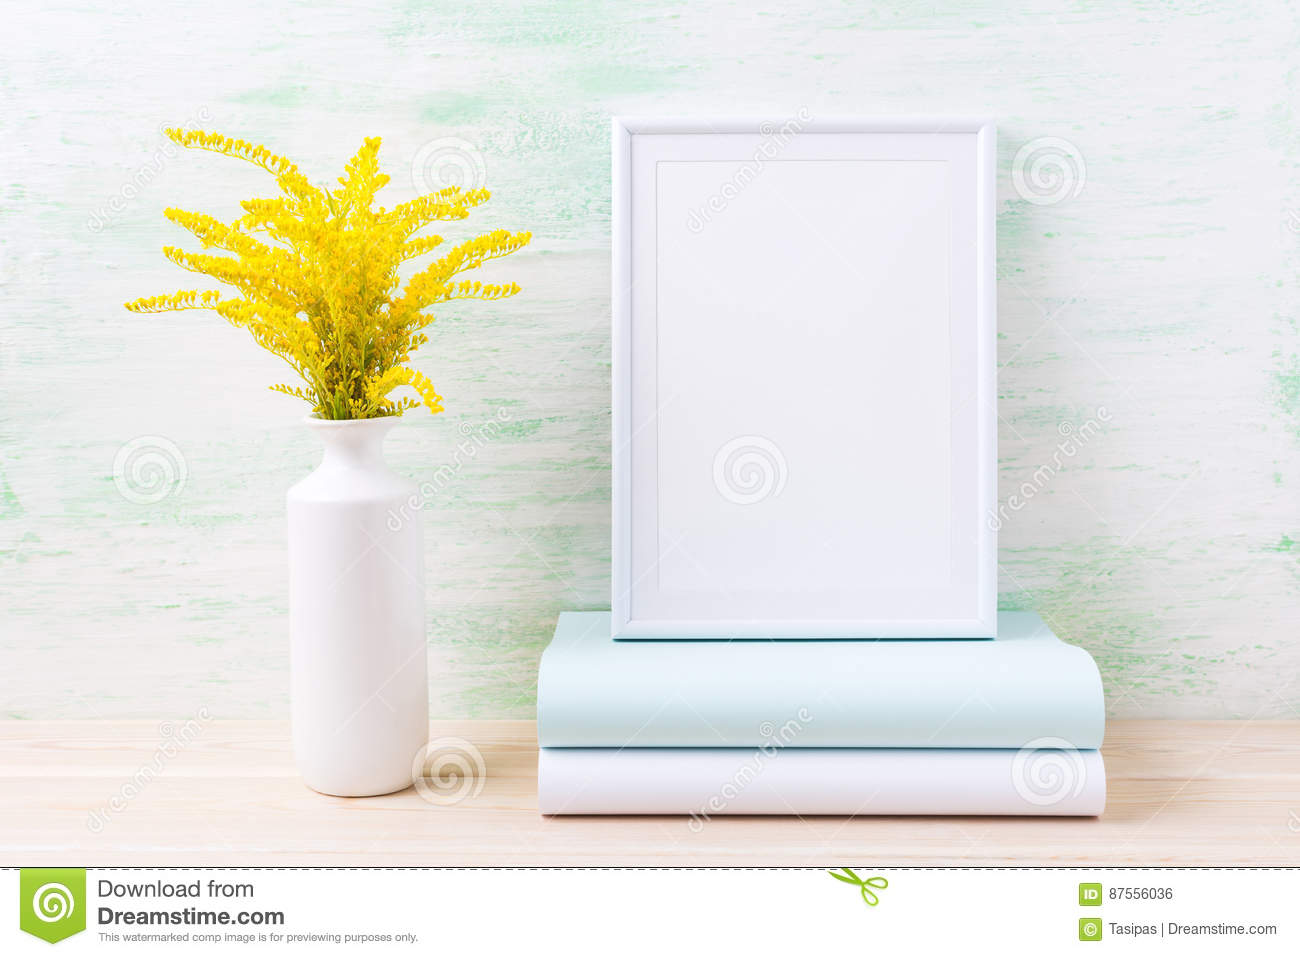 White frame mockup with ornamental golden grass and books